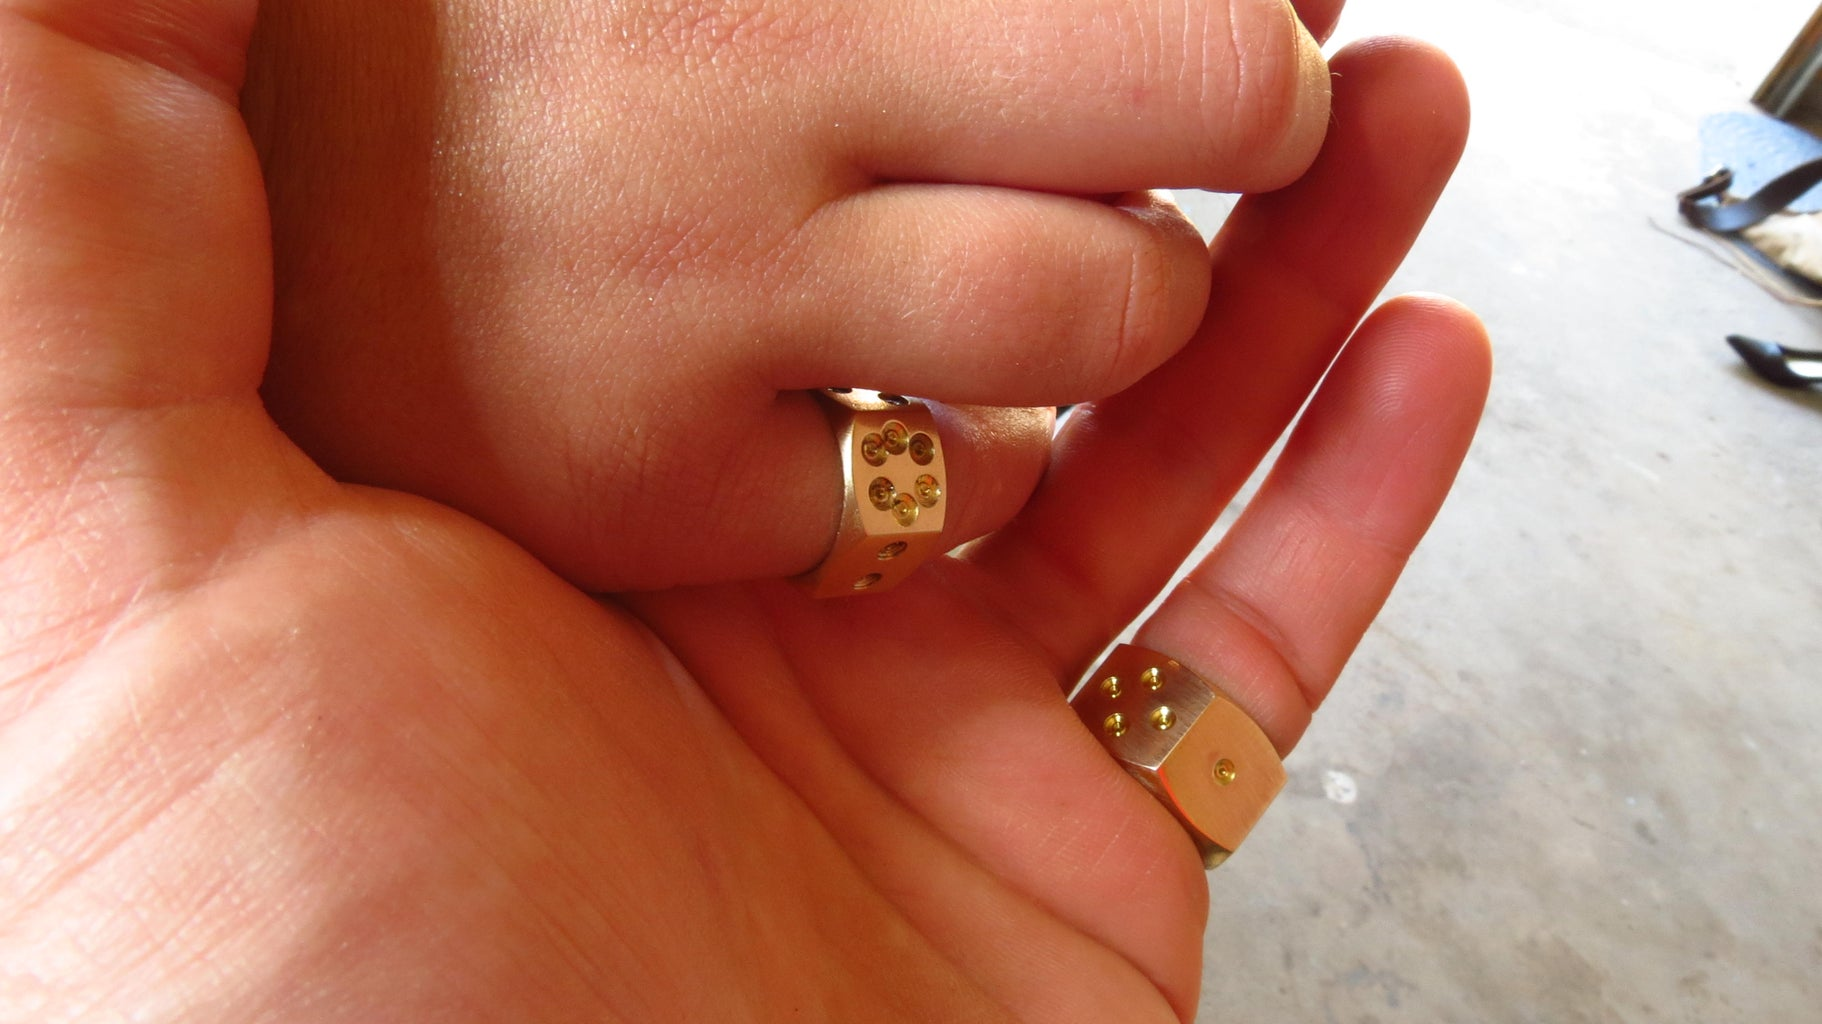 Daddy Daughter D6 Ring